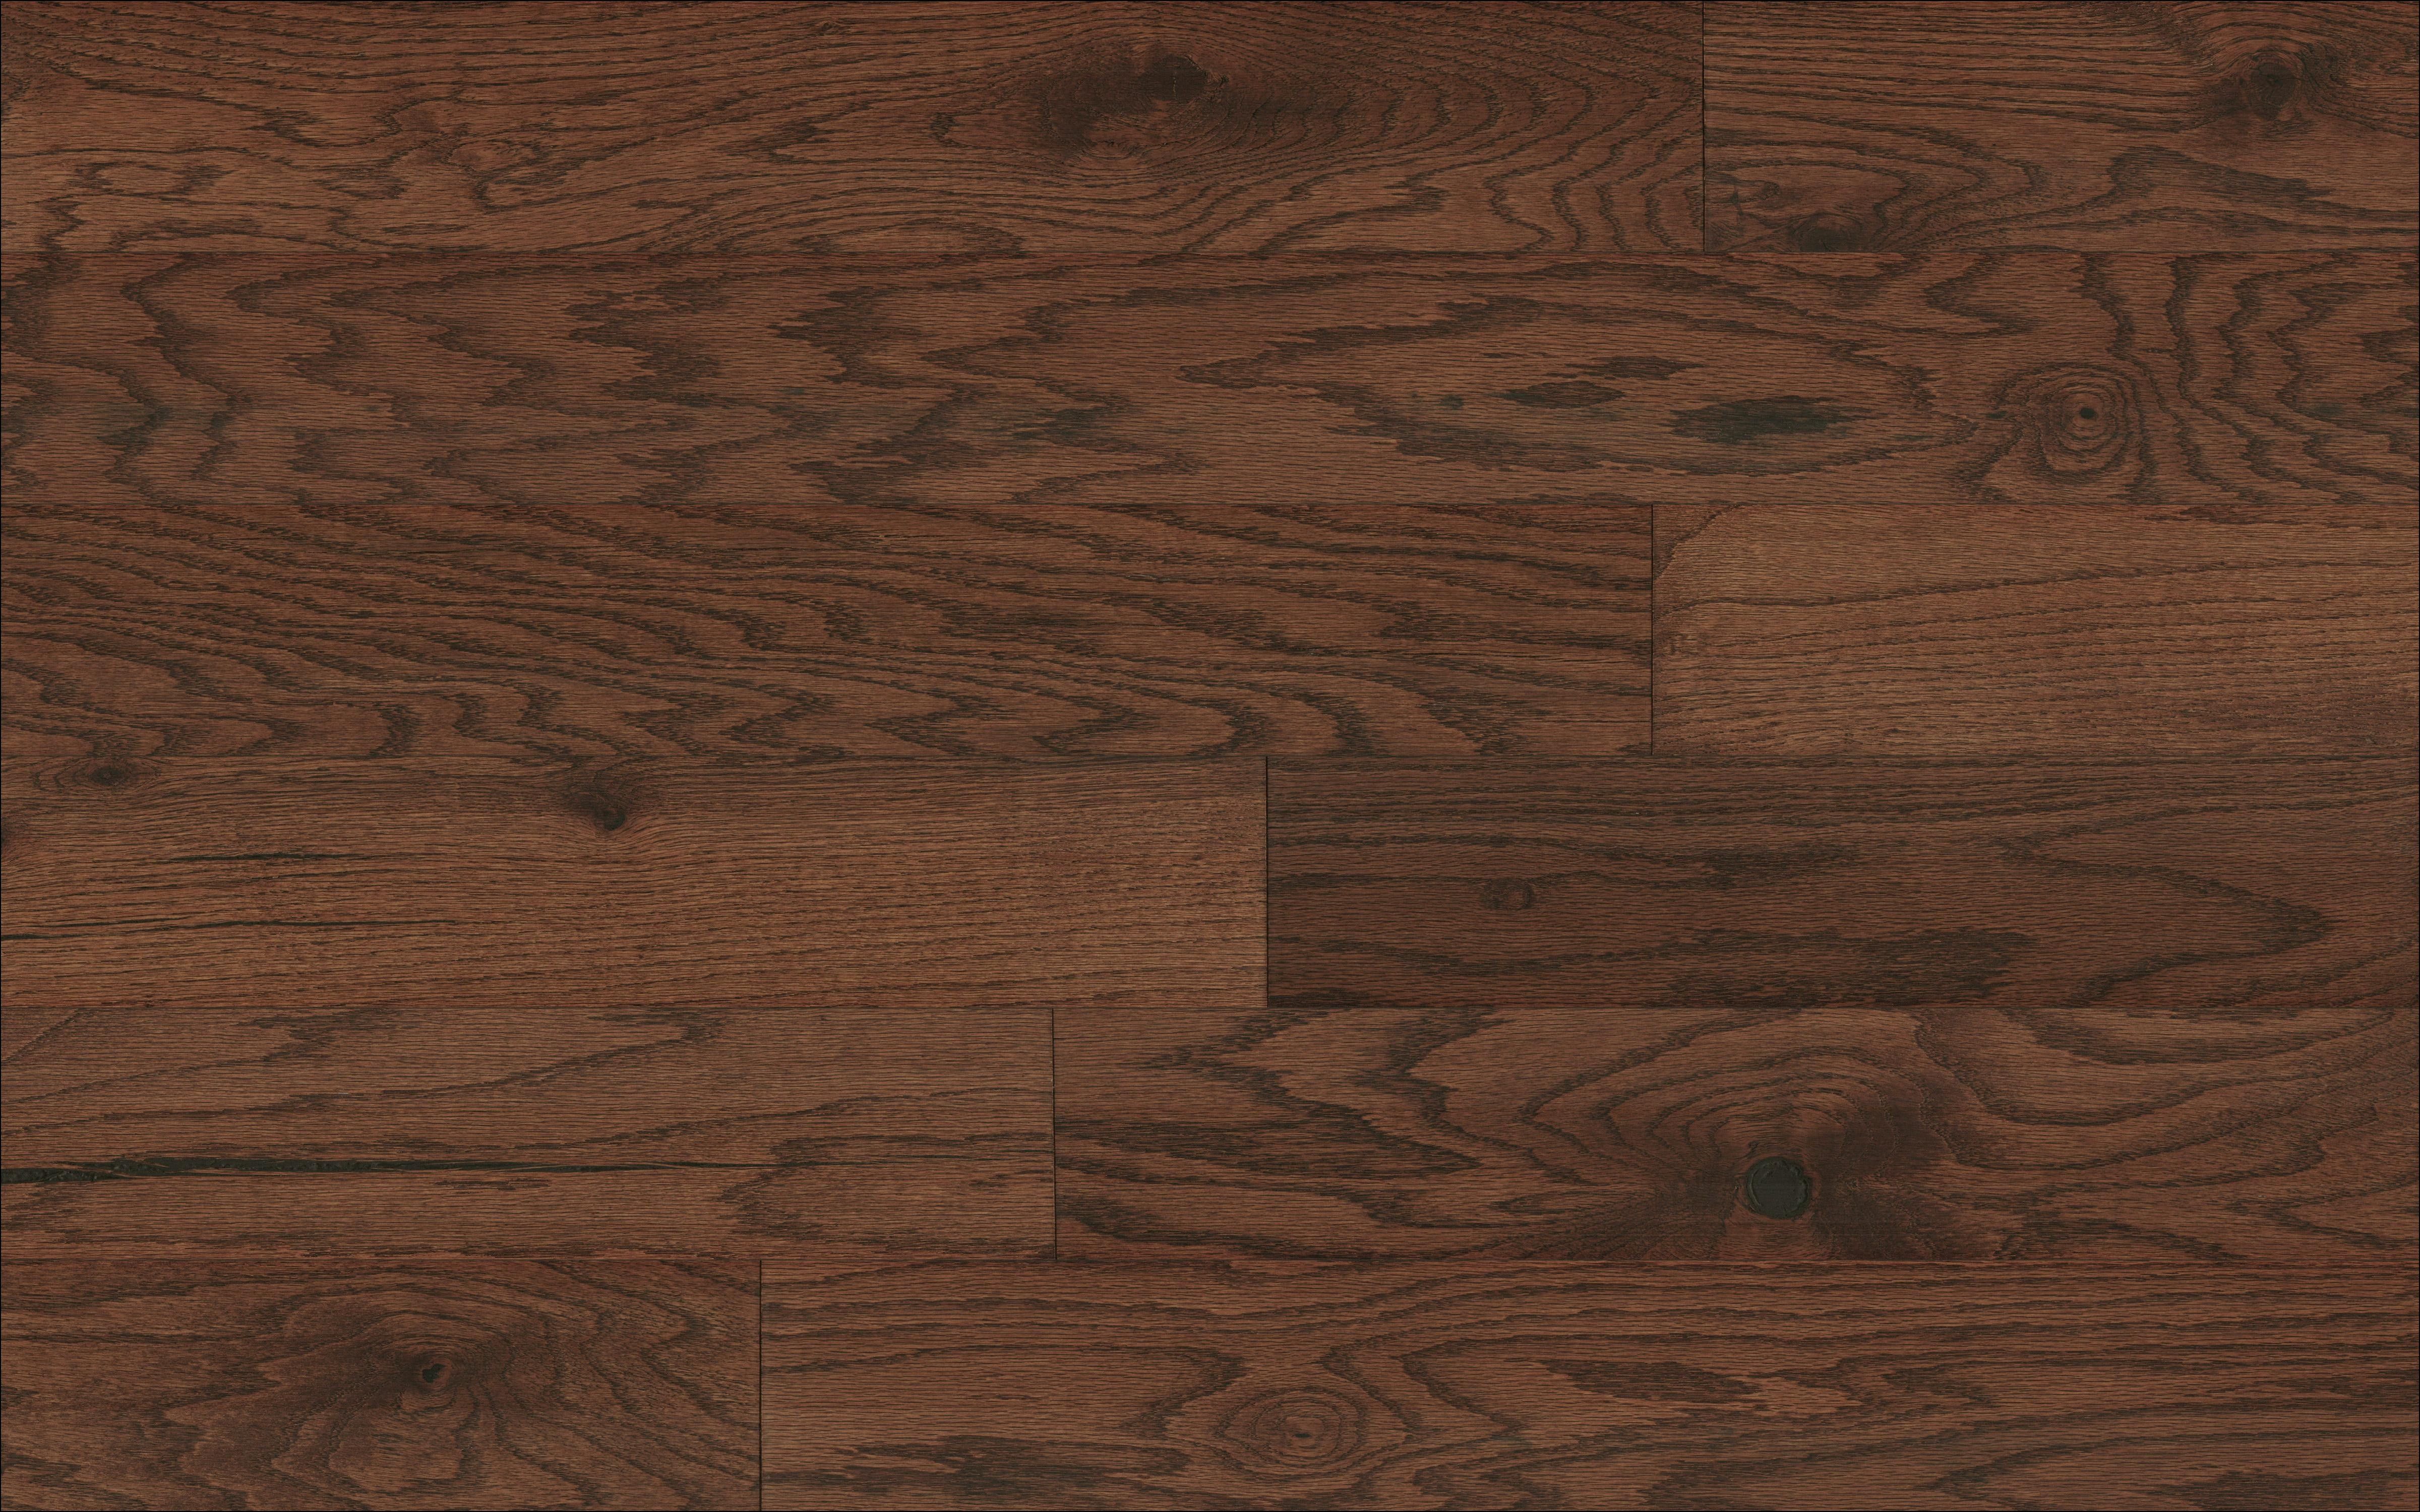 waterproof hardwood flooring of best place flooring ideas within best place to buy engineered hardwood flooring collection mullican devonshire oak saddle 5 engineered hardwood